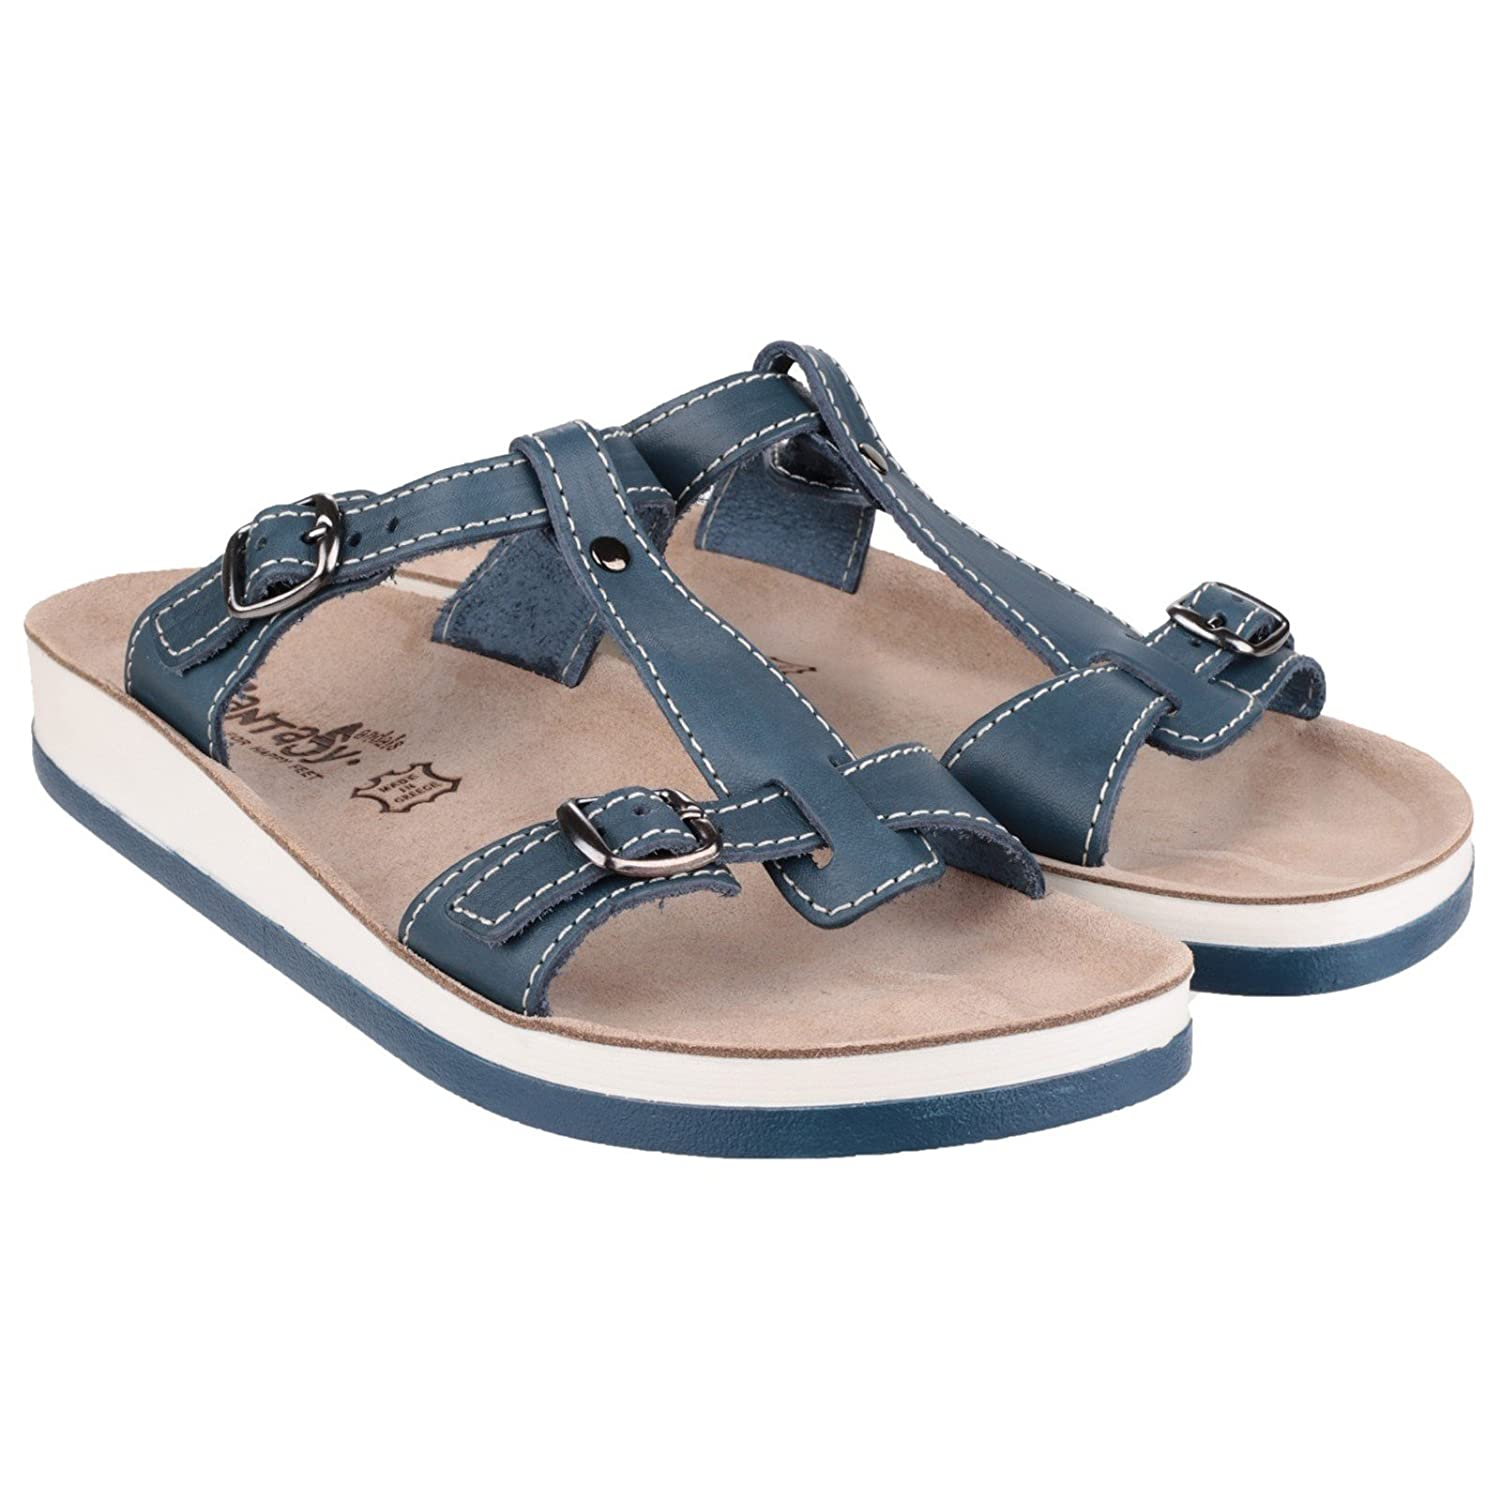 Fantasy Ladies Arillas Leather Metal Buckle Slide Sandal Navy WvYc5CO